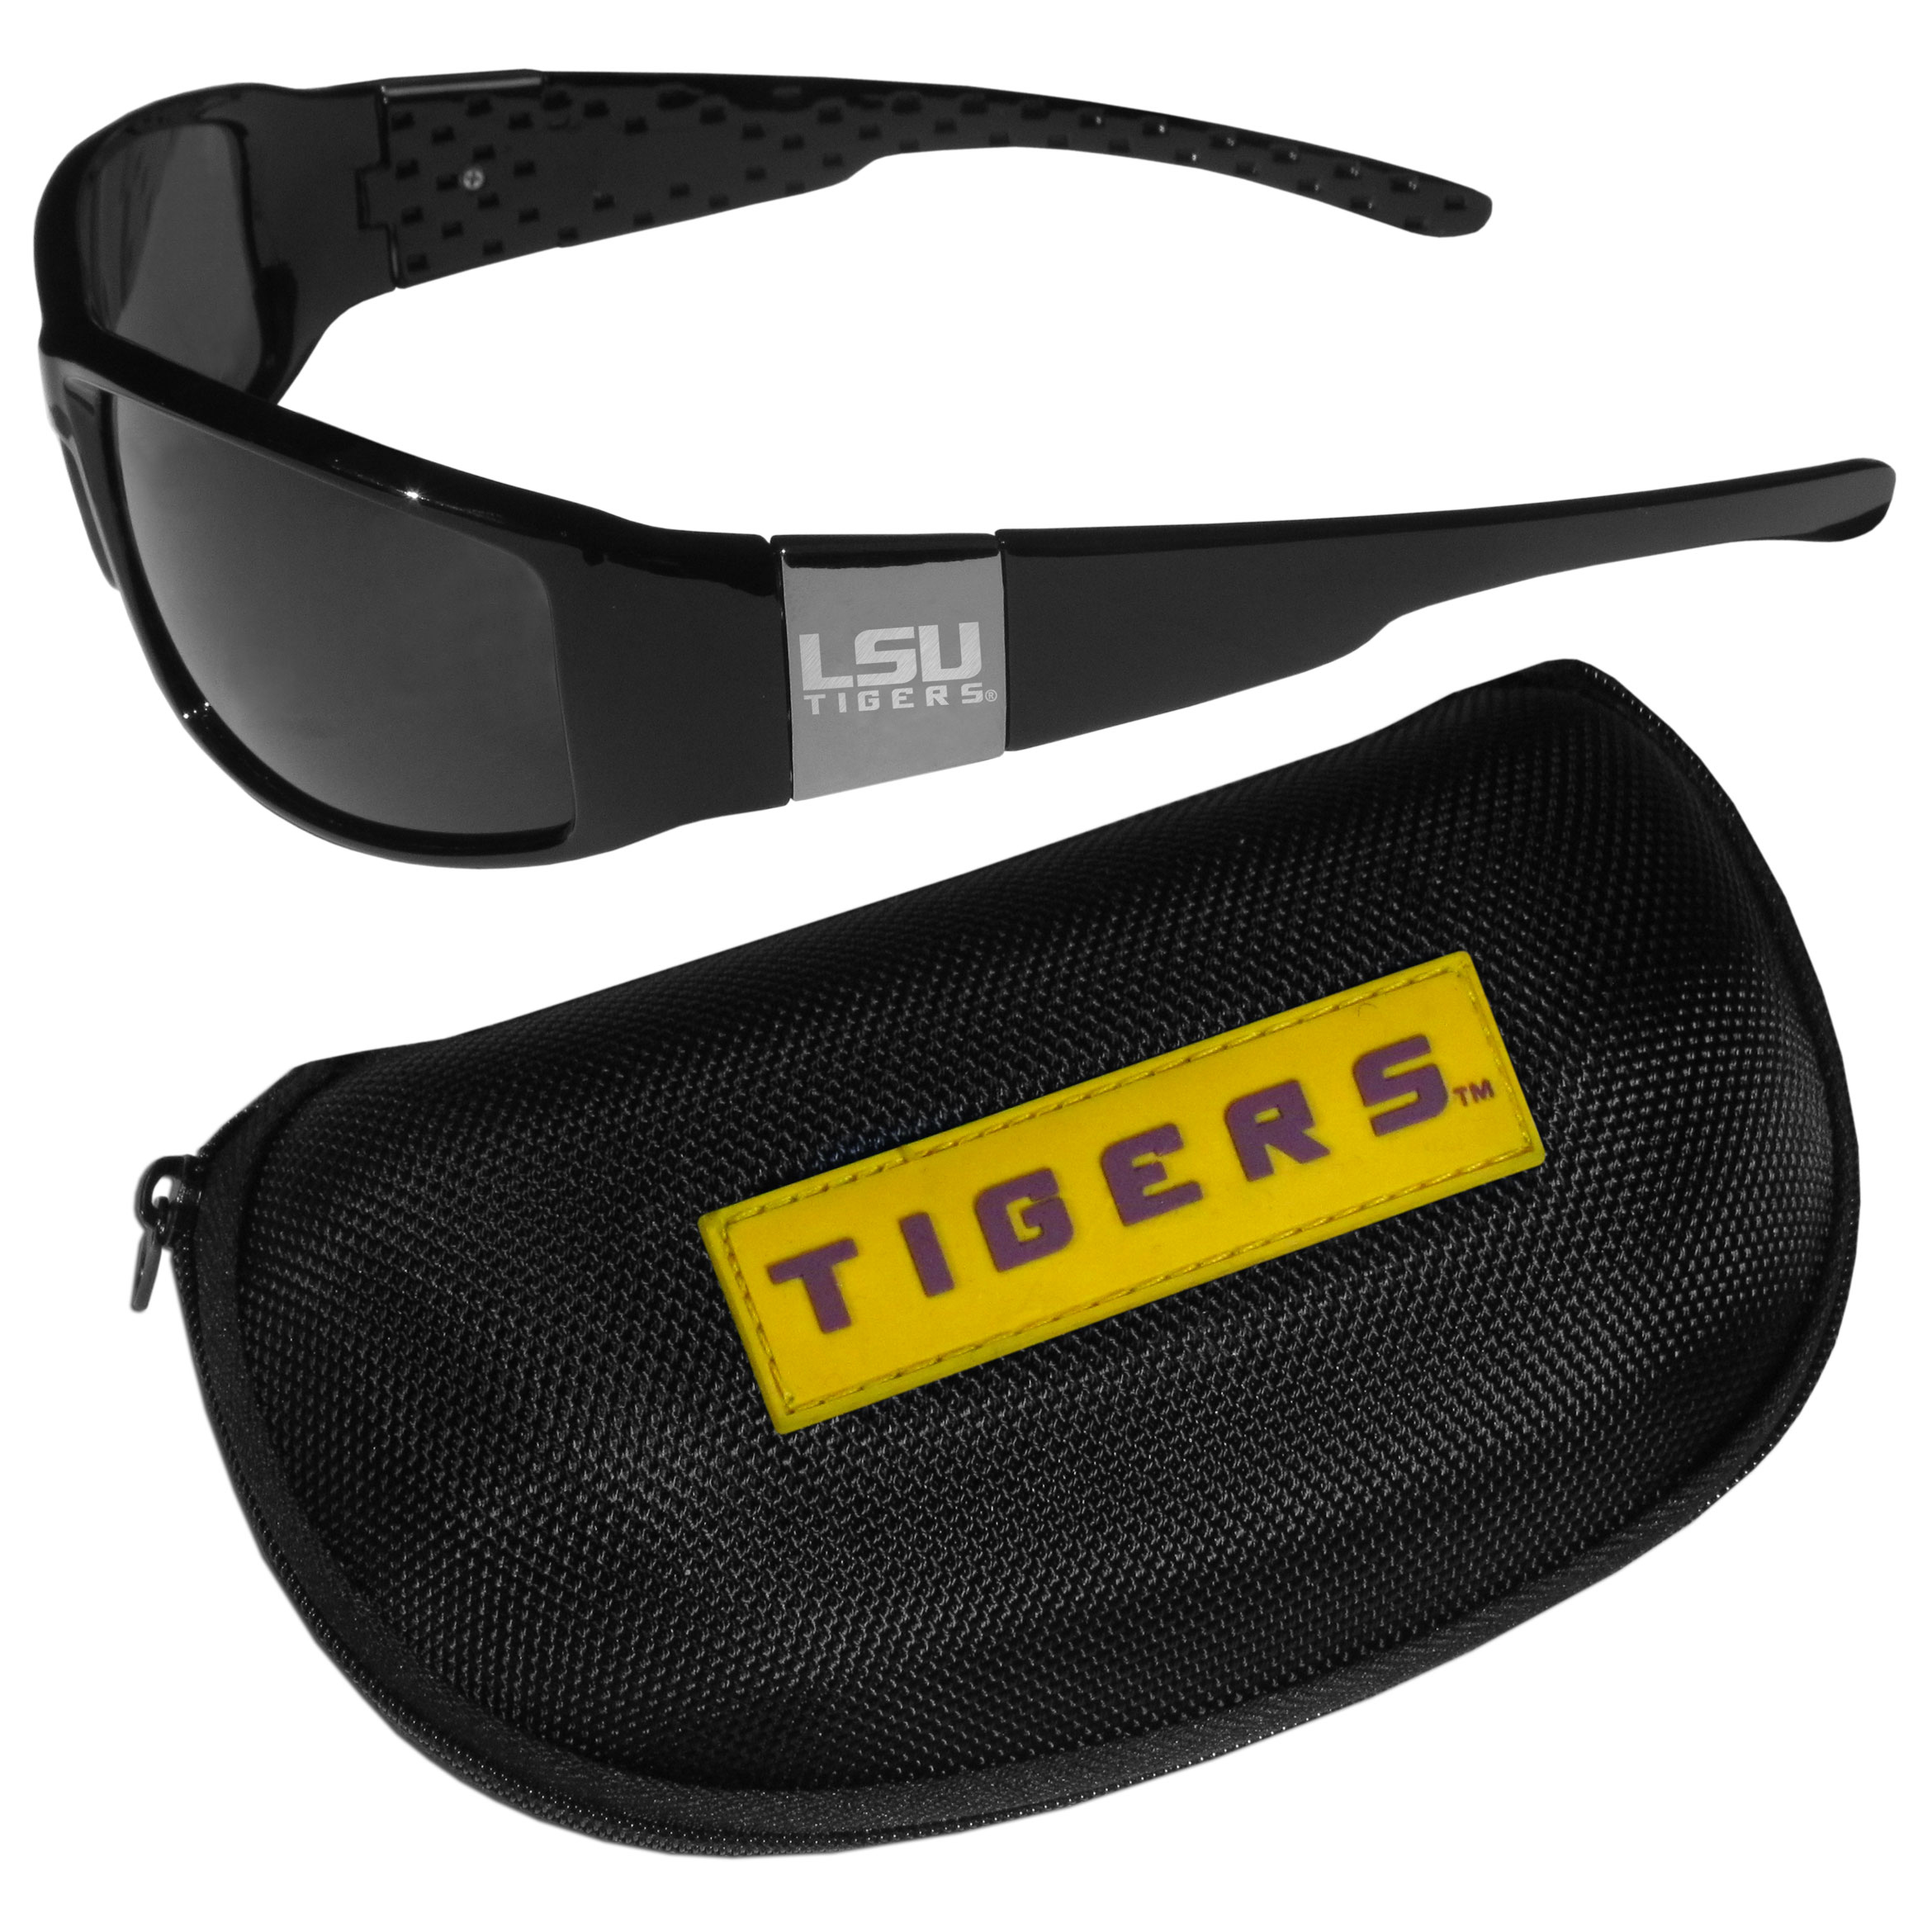 LSU Tigers Chrome Wrap Sunglasses and Zippered Carrying Case - These designer inspired frames have a sleek look in all black with high-polish chrome LSU Tigers shields on each arm with an etched logo. The shades are perfect any outdoor activity like; golfing, driving, hiking, fishing or cheering on the team at a tailgating event or an at home game day BBQ with a lens rating of 100% UVA/UVB for maximum UV protection. The high-quality frames are as durable as they are fashionable and with their classic look they are perfect fan accessory that can be worn everyday for every occasion. The shades come with a zippered hard shell case to keep your sunglasses safe.